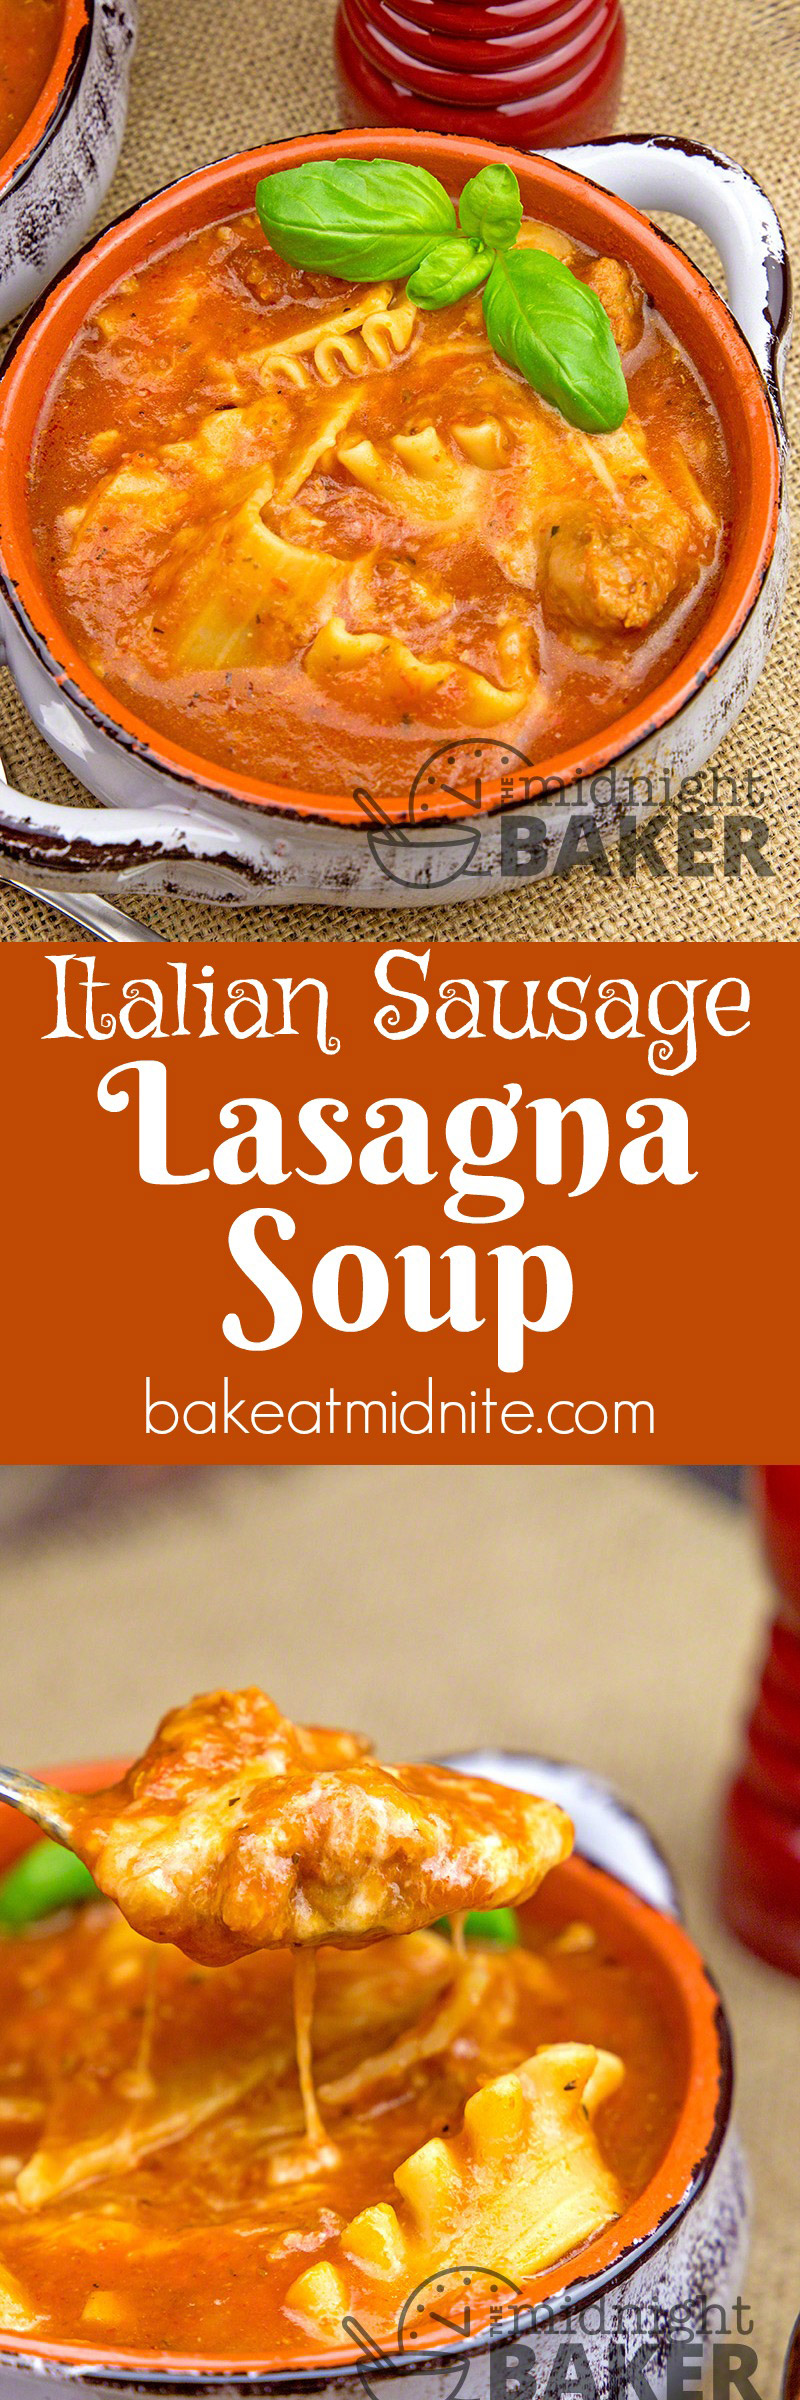 This lasagna soup uses Italian sausage rather than ground beef so it's extra tasty!